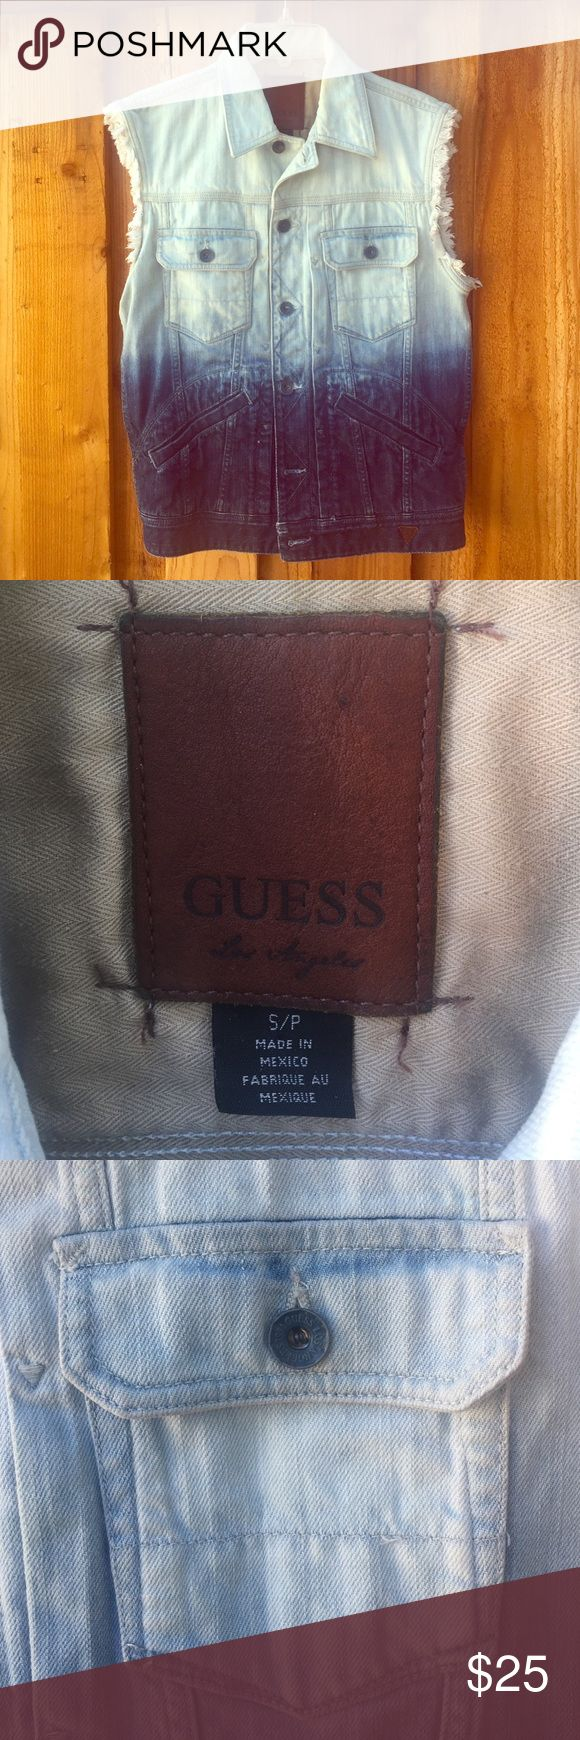 Distressed Guess Dip Dye Jean Vest The jean vest was worn a few times and is in great shape. It has a Dip Dye fade from light blue to a dark blue, around the collar it's alittle faded. The price isn't firm so feel free to send me an offer! Guess Jackets & Coats Vests